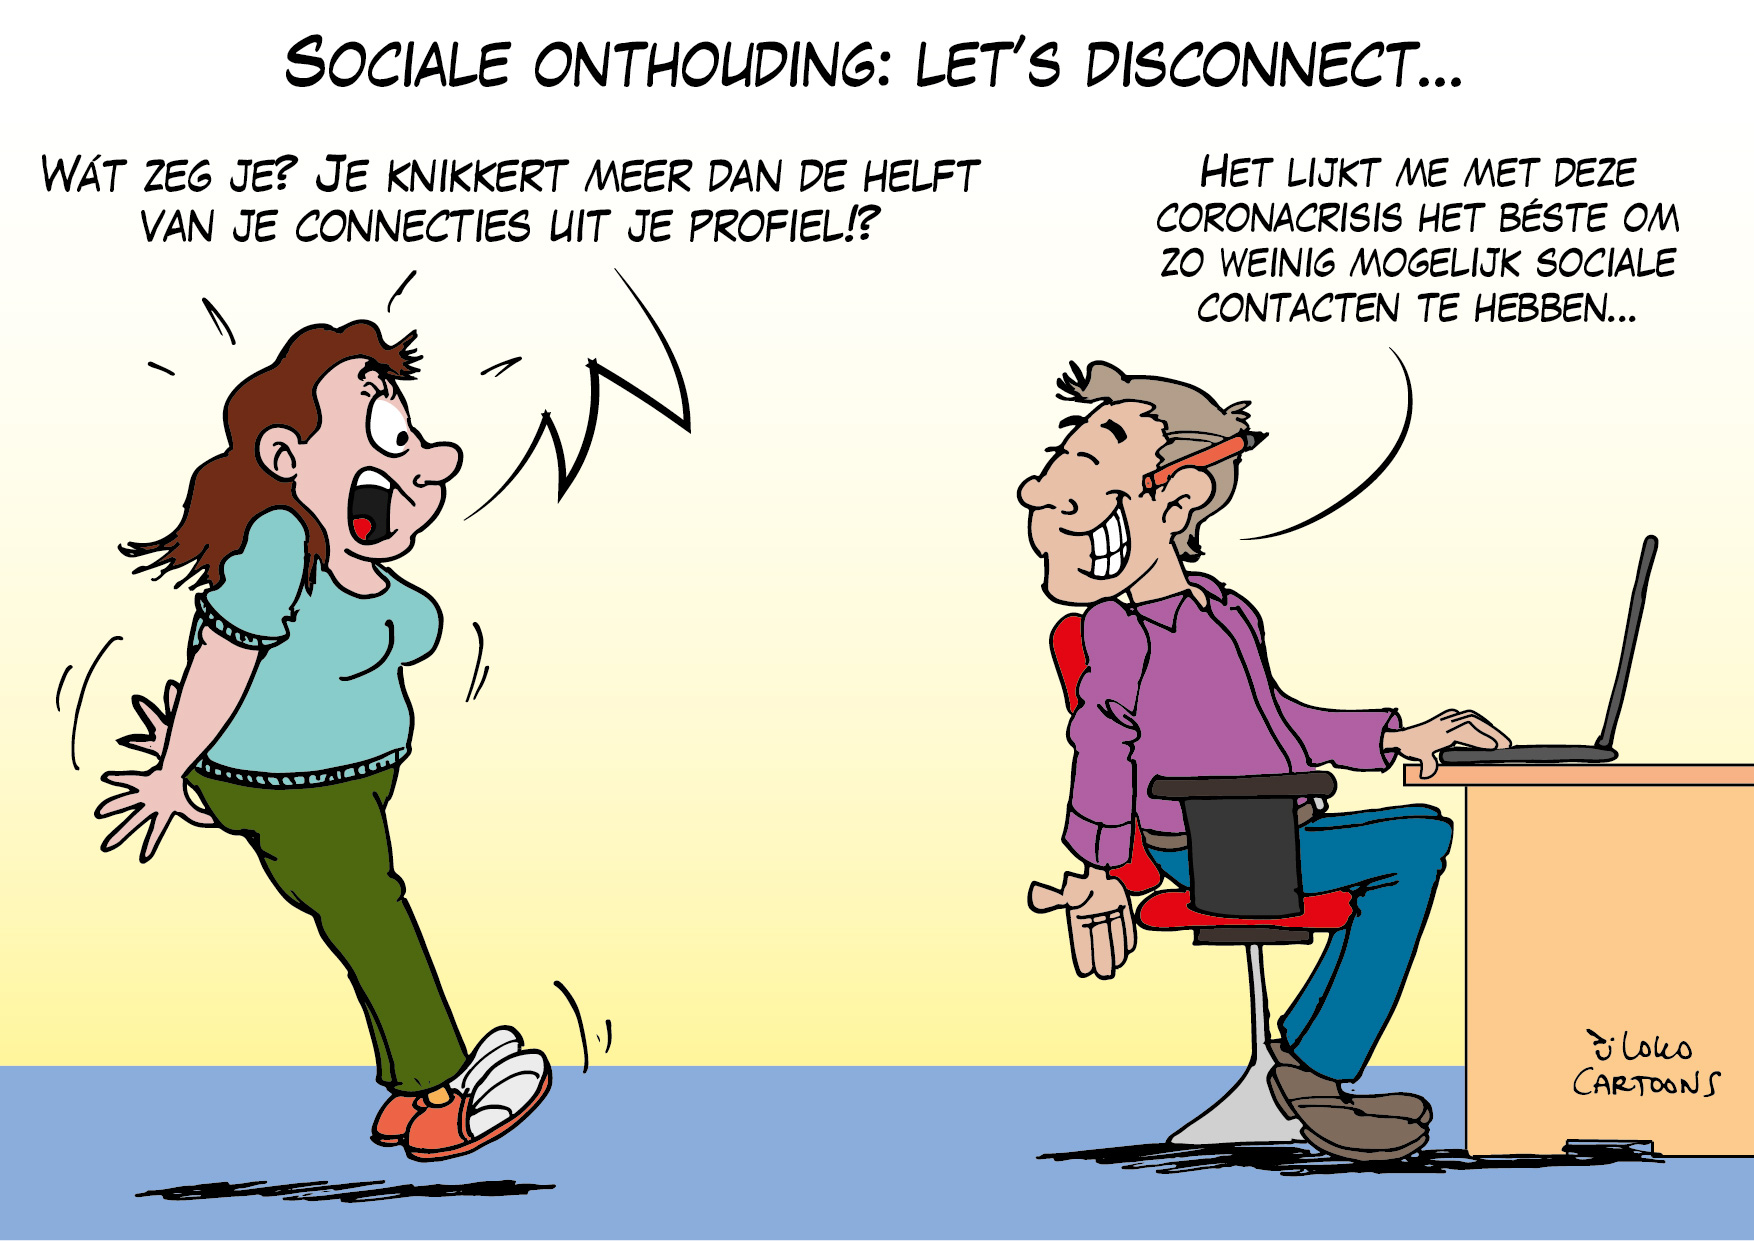 Sociale onthouding: let's disconnect!